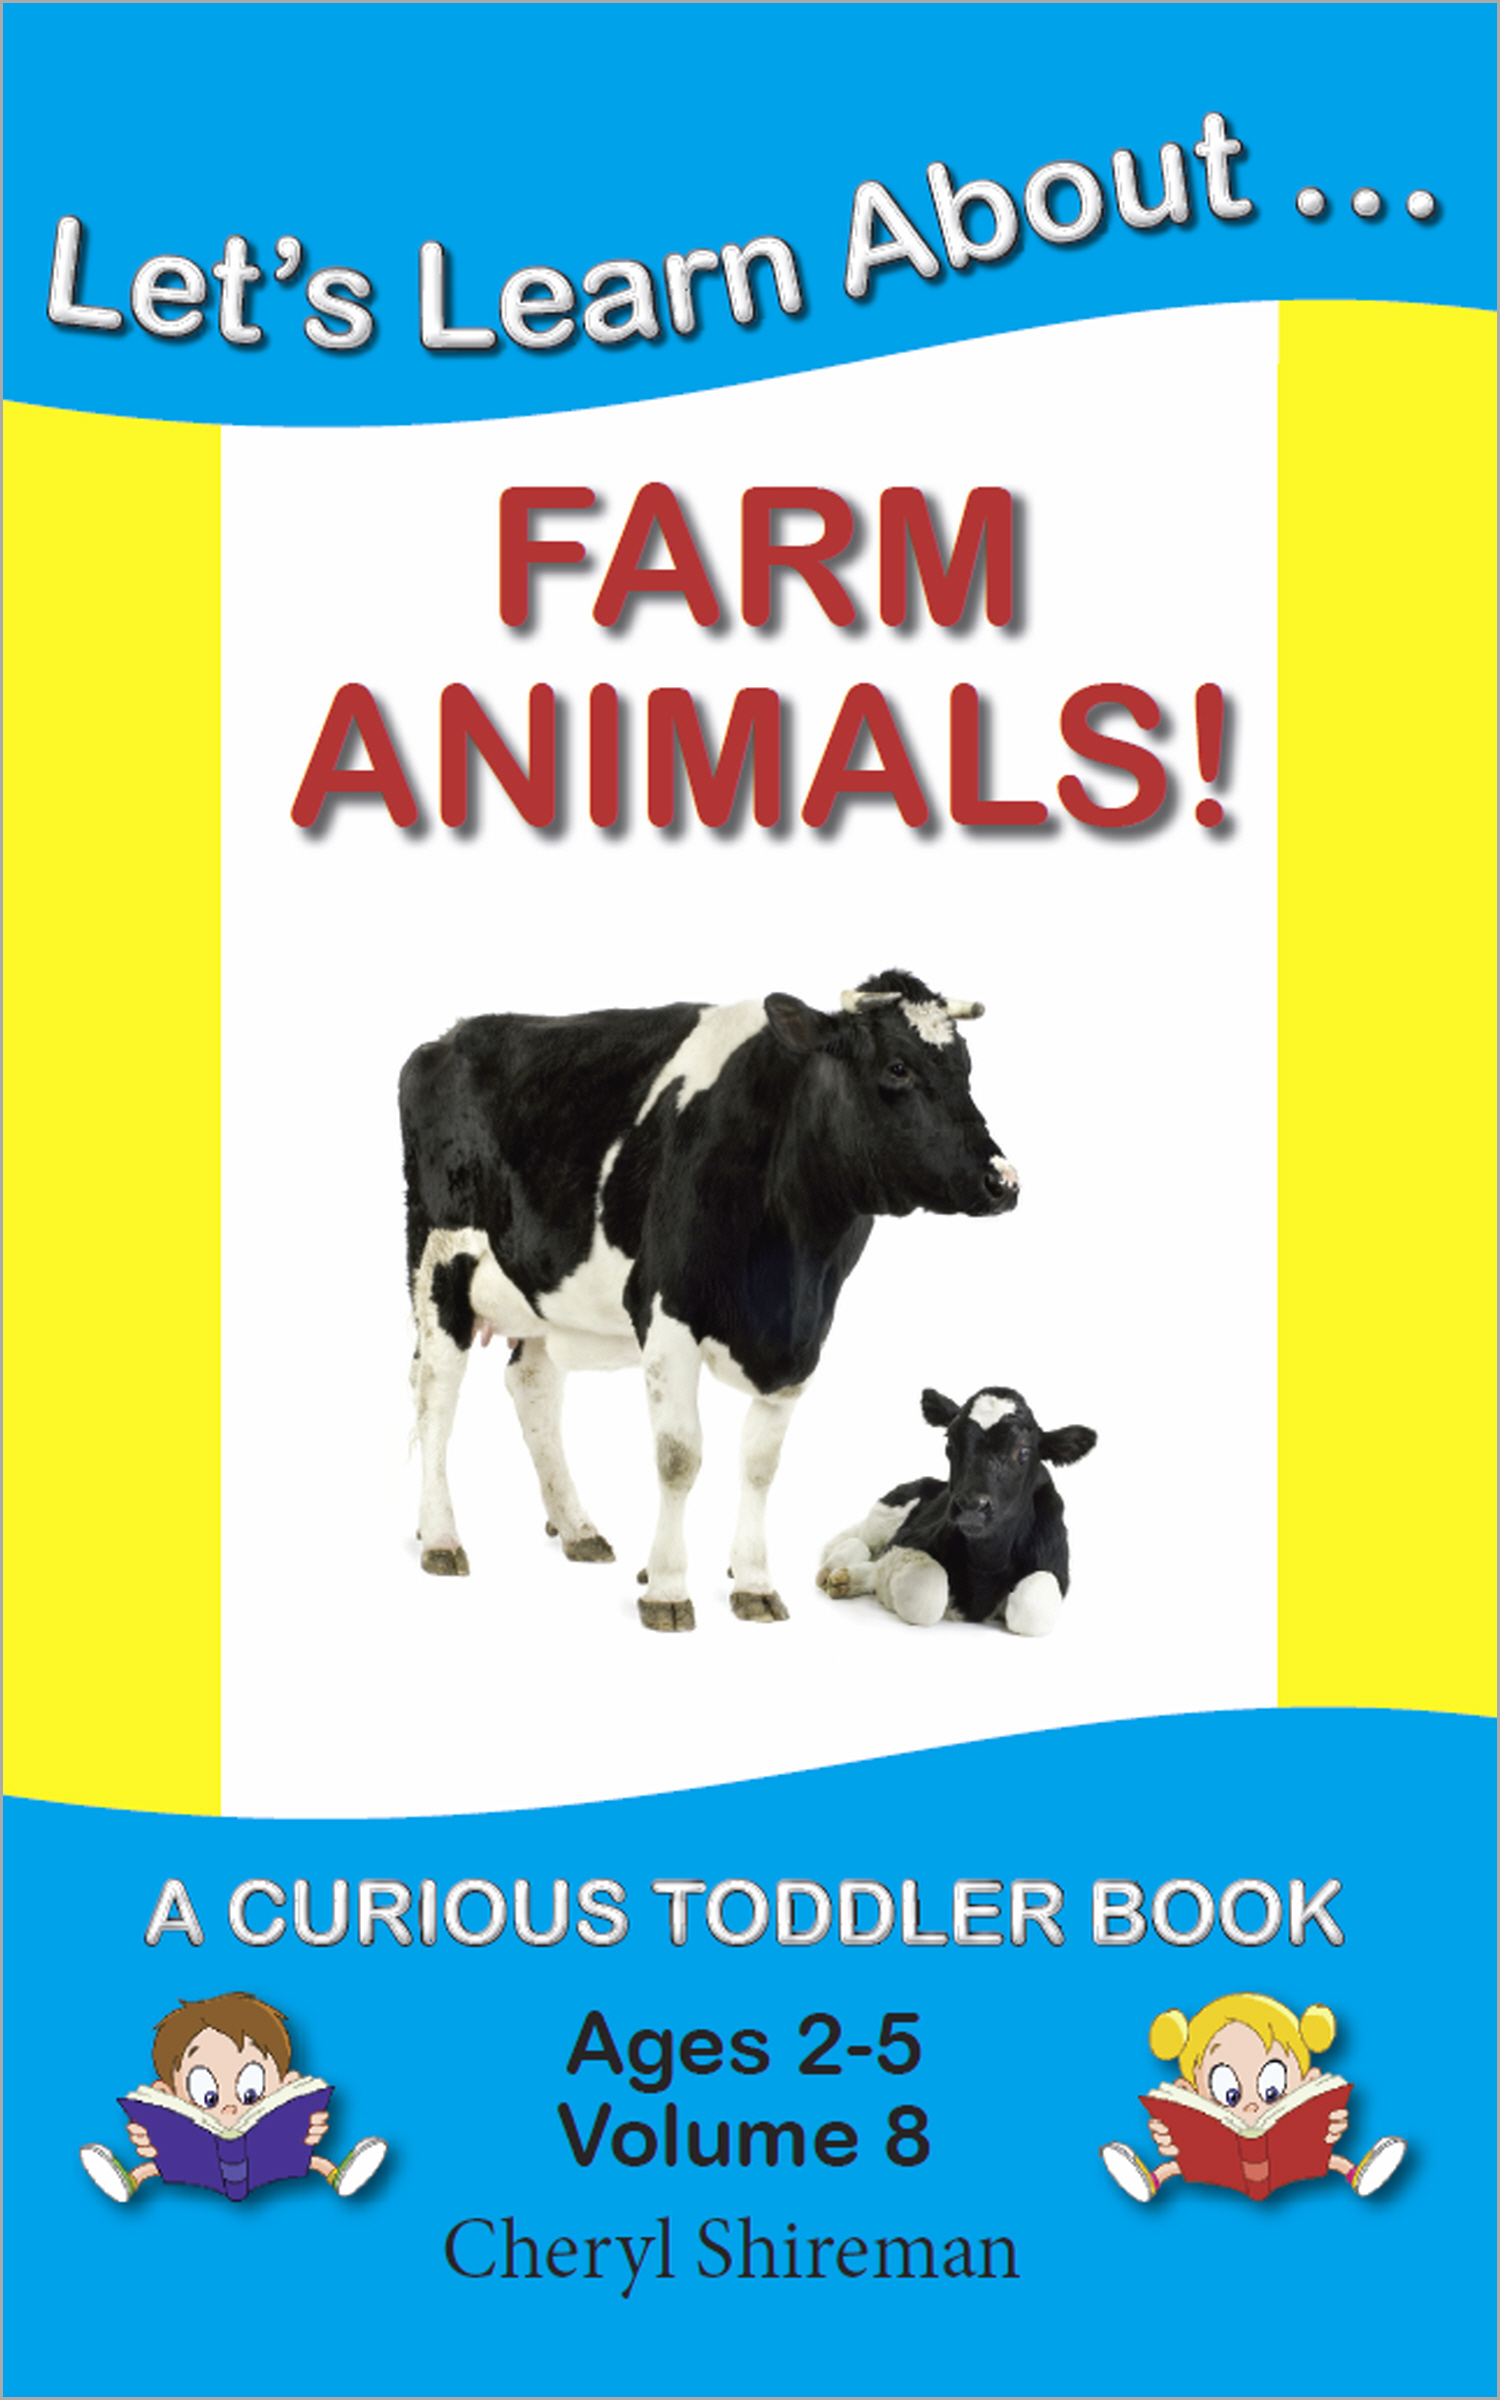 Let's Learn About...Farm Animals!